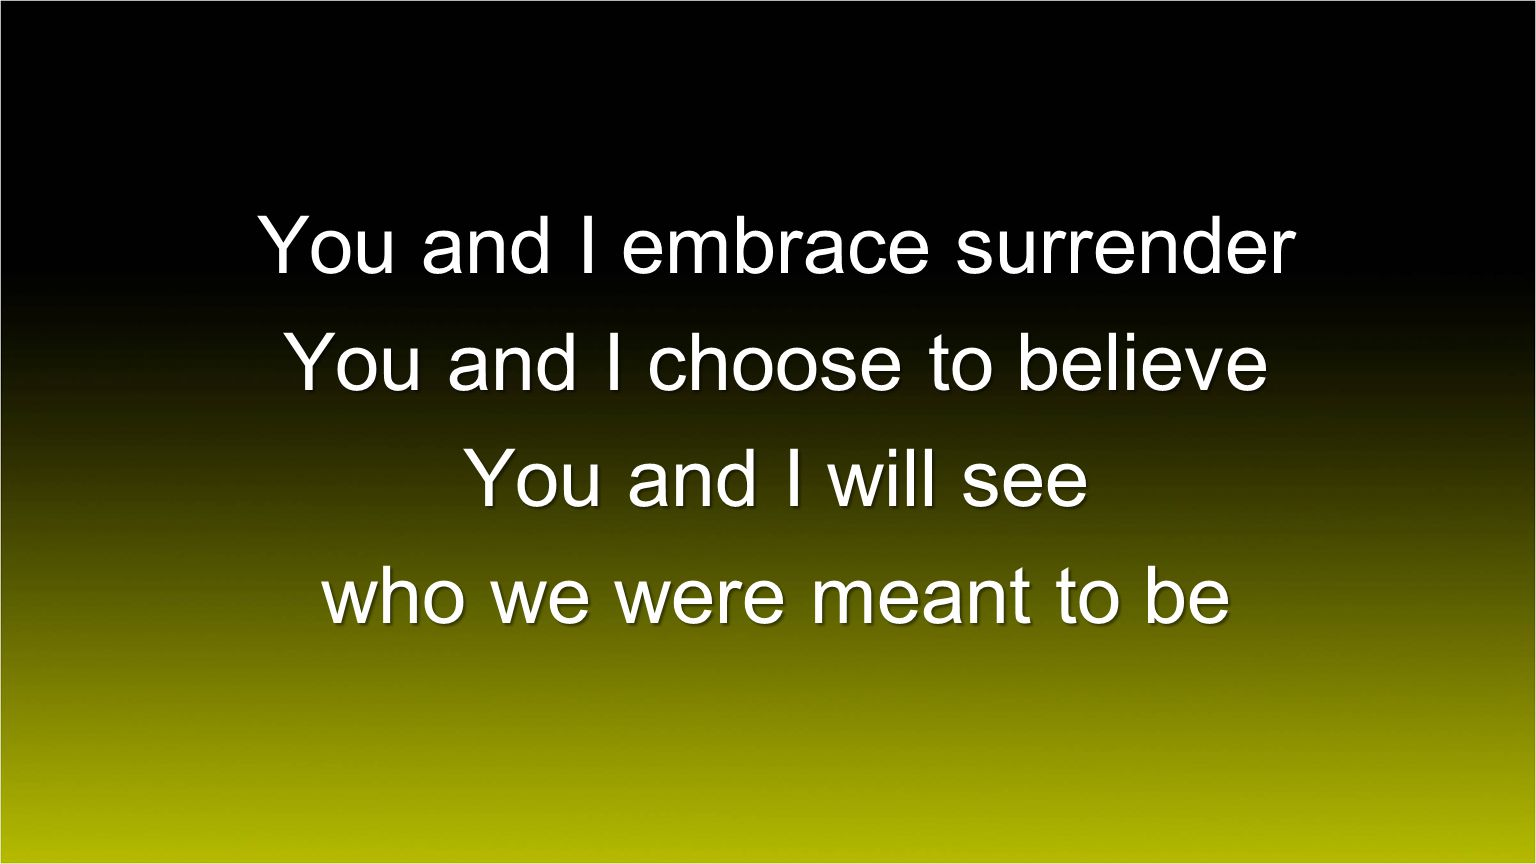 You and I embrace surrender You and I choose to believe